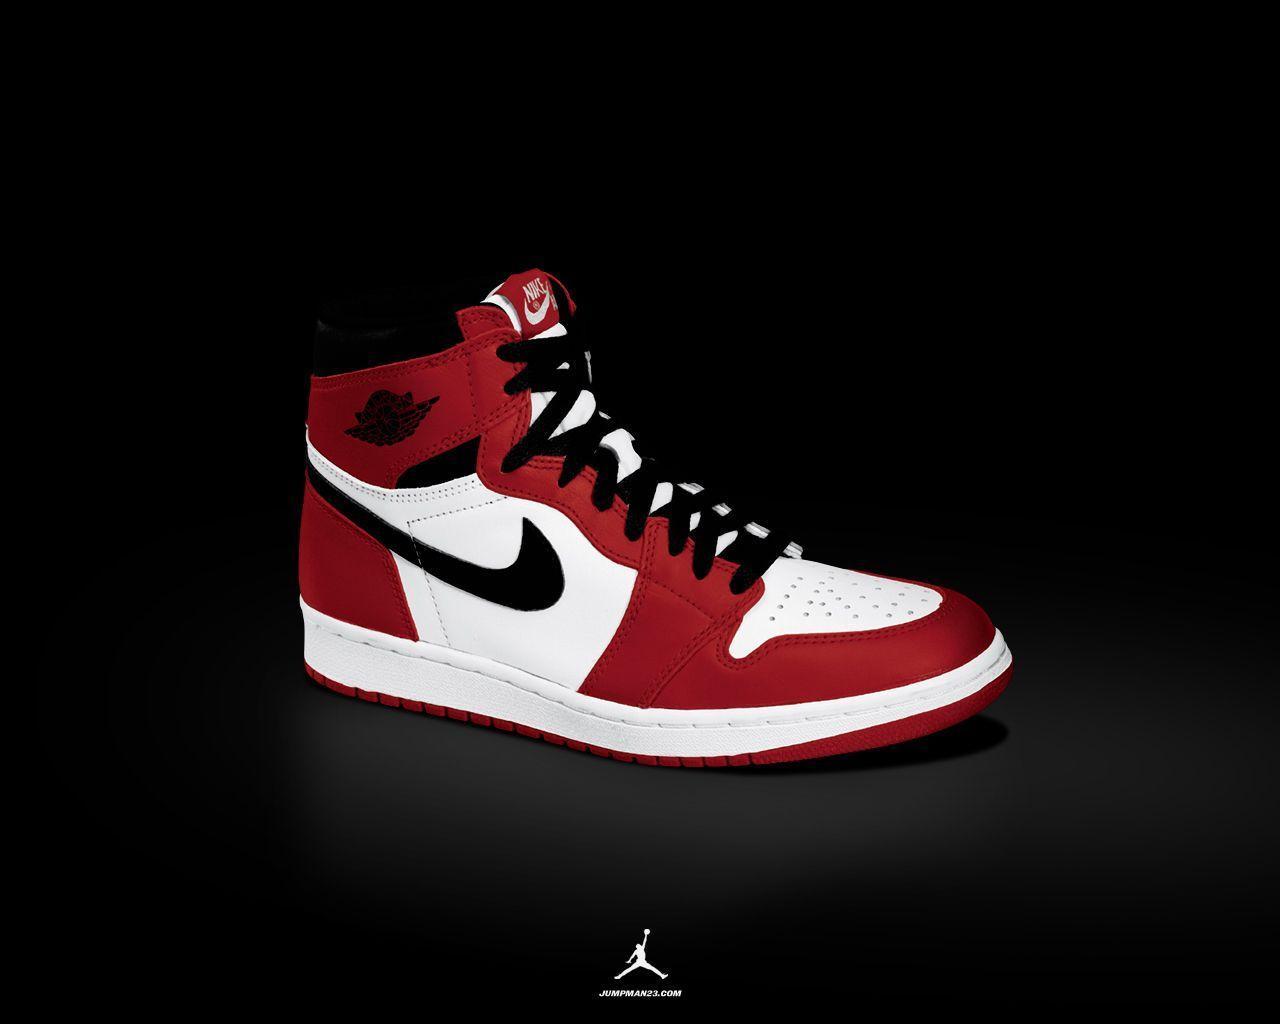 Air Jordan <b>Shoes Wallpapers</b> - <b>Wallpaper</b> Cave